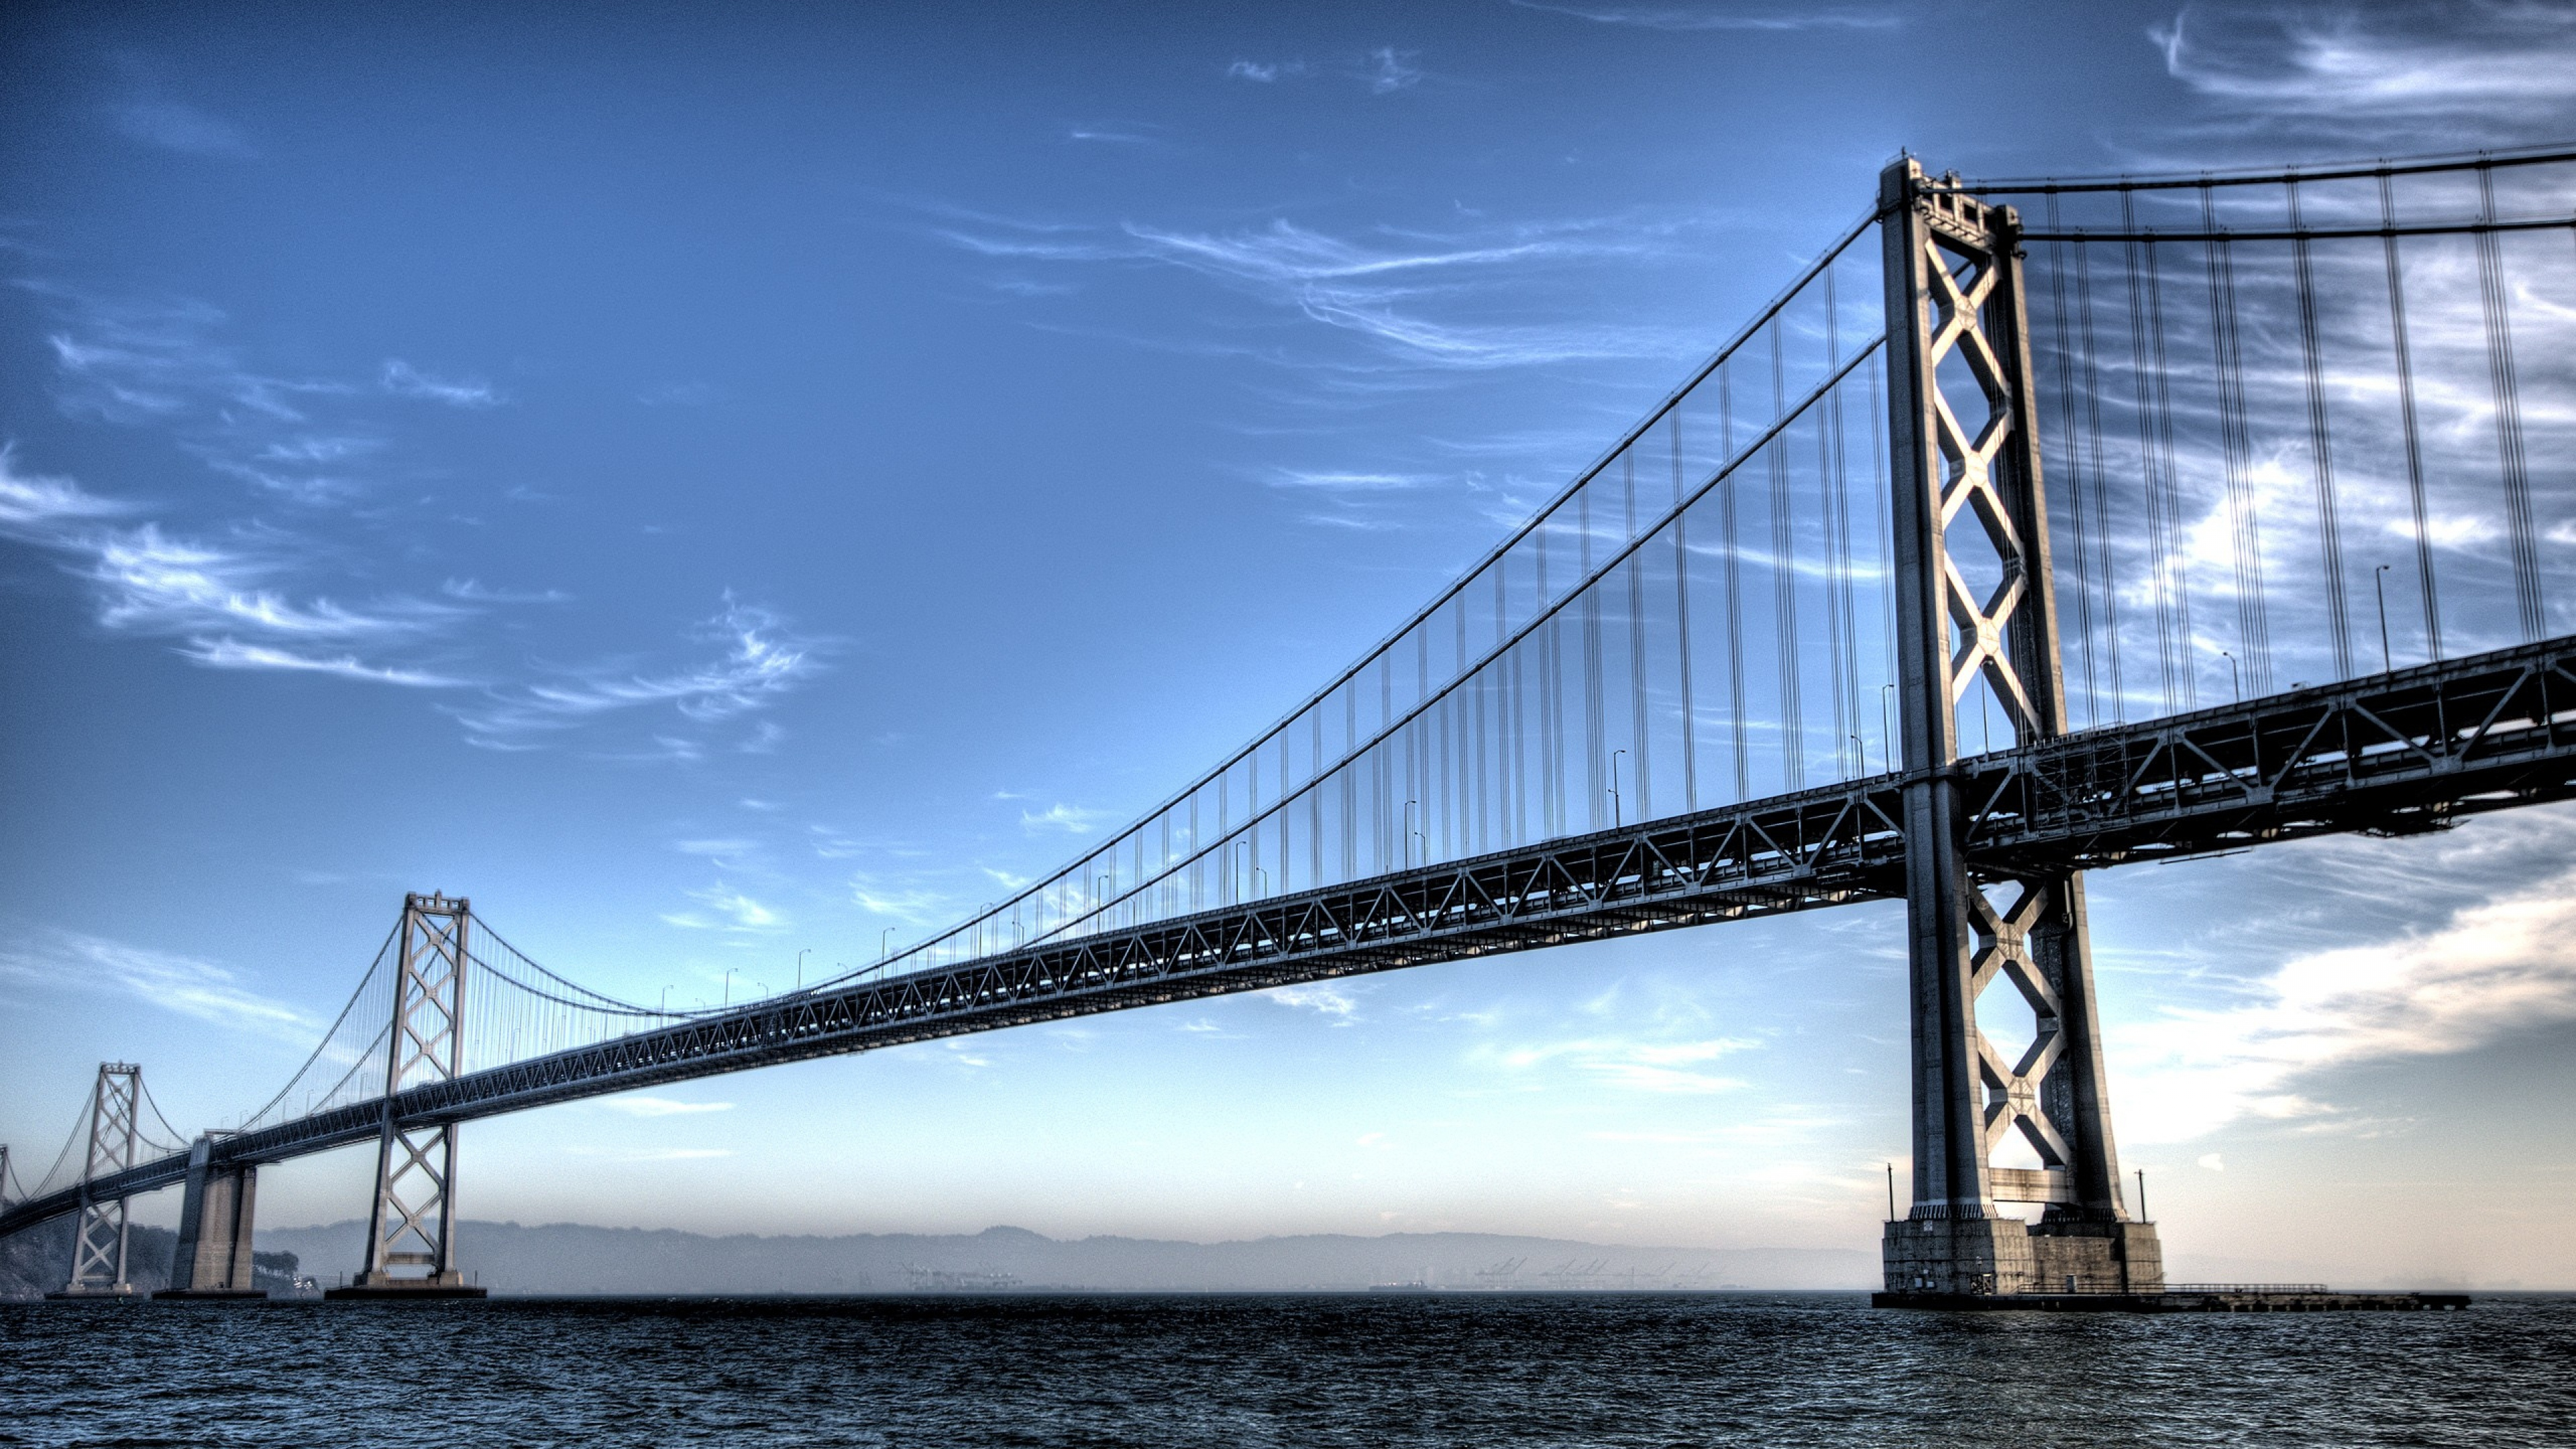 Wallpaper 3840x2160 san francisco sky nature wave bridge 4K 3840x2160